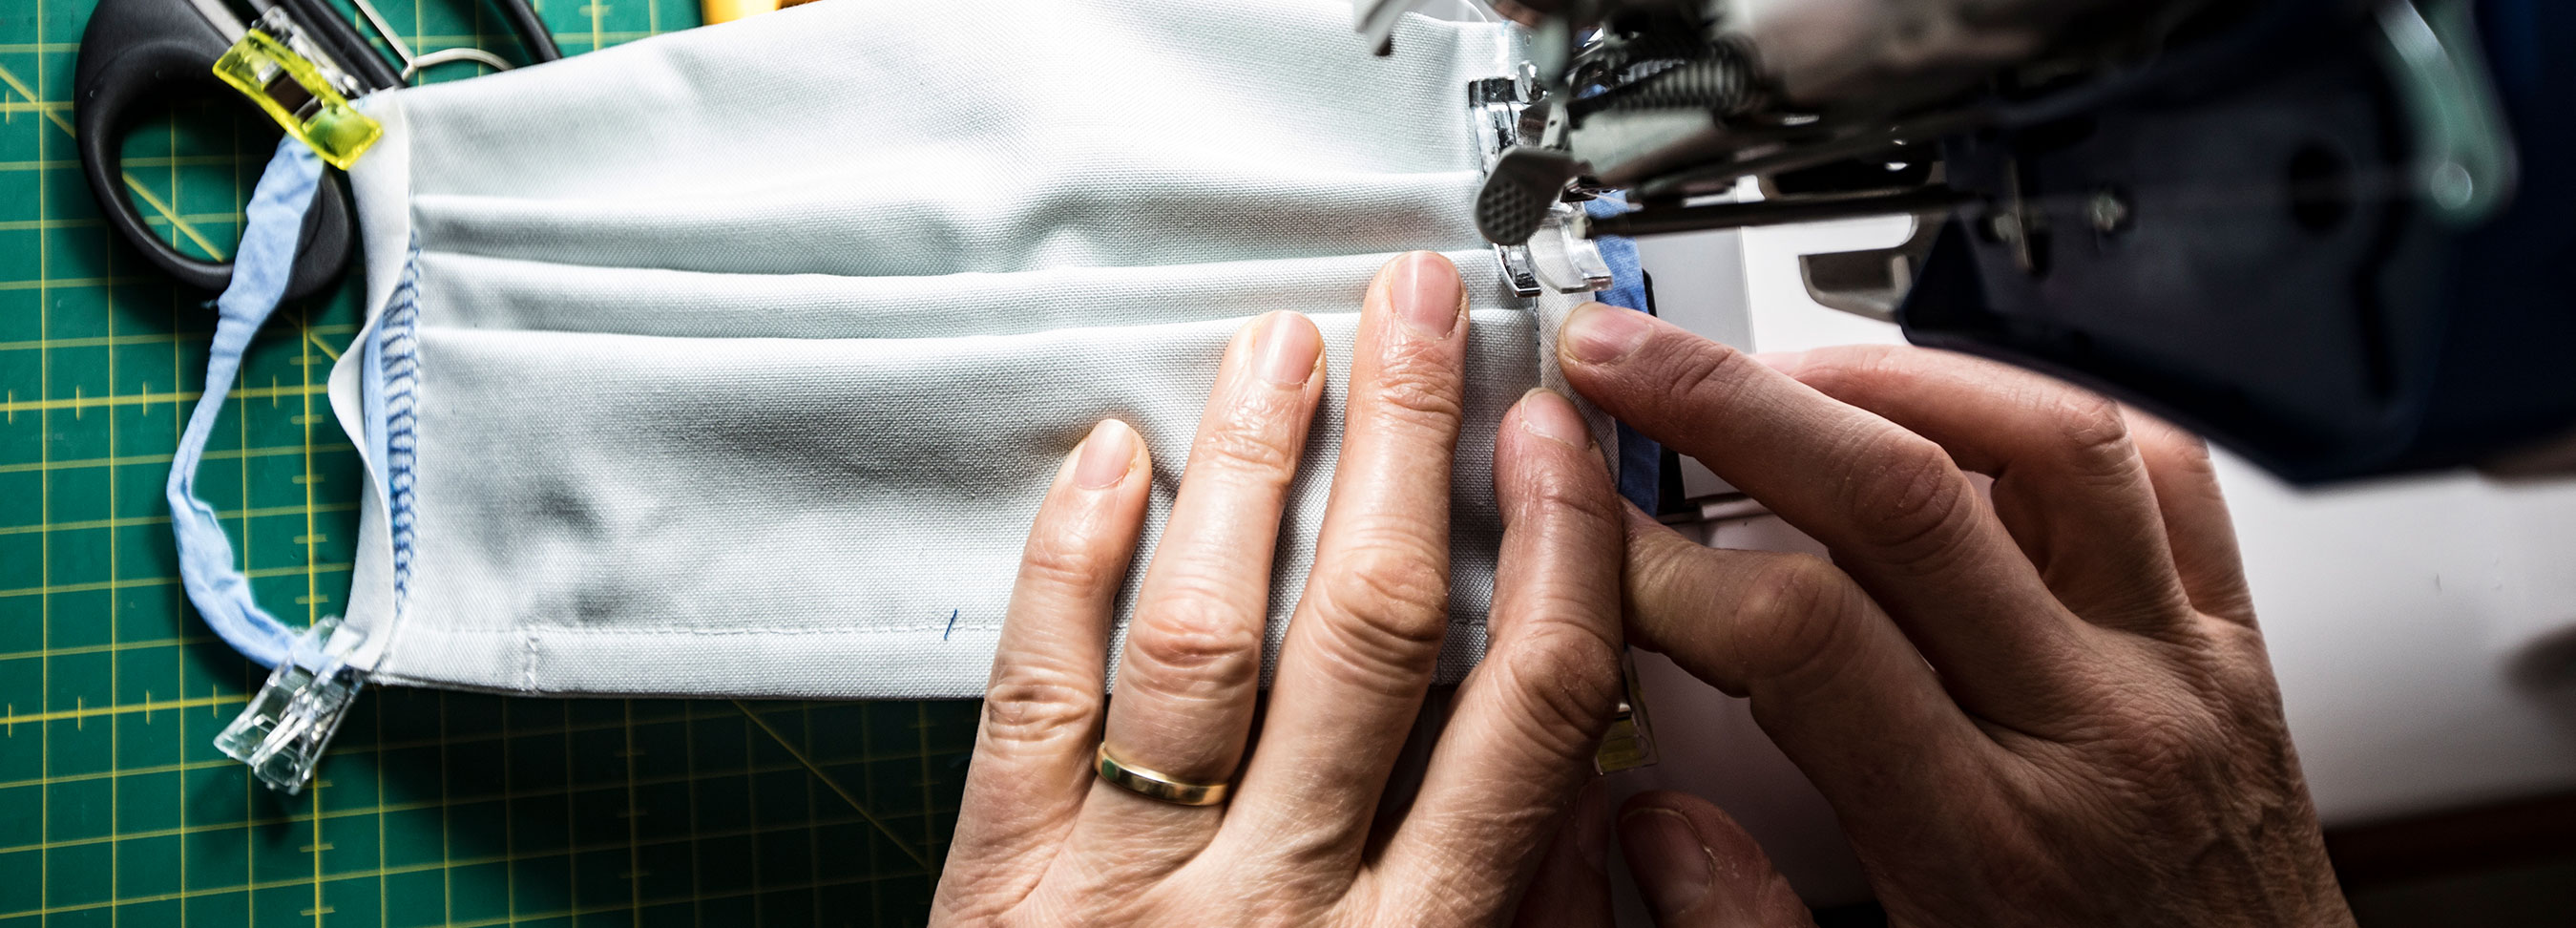 Image of woman sewing handmade face covering on sewing machine